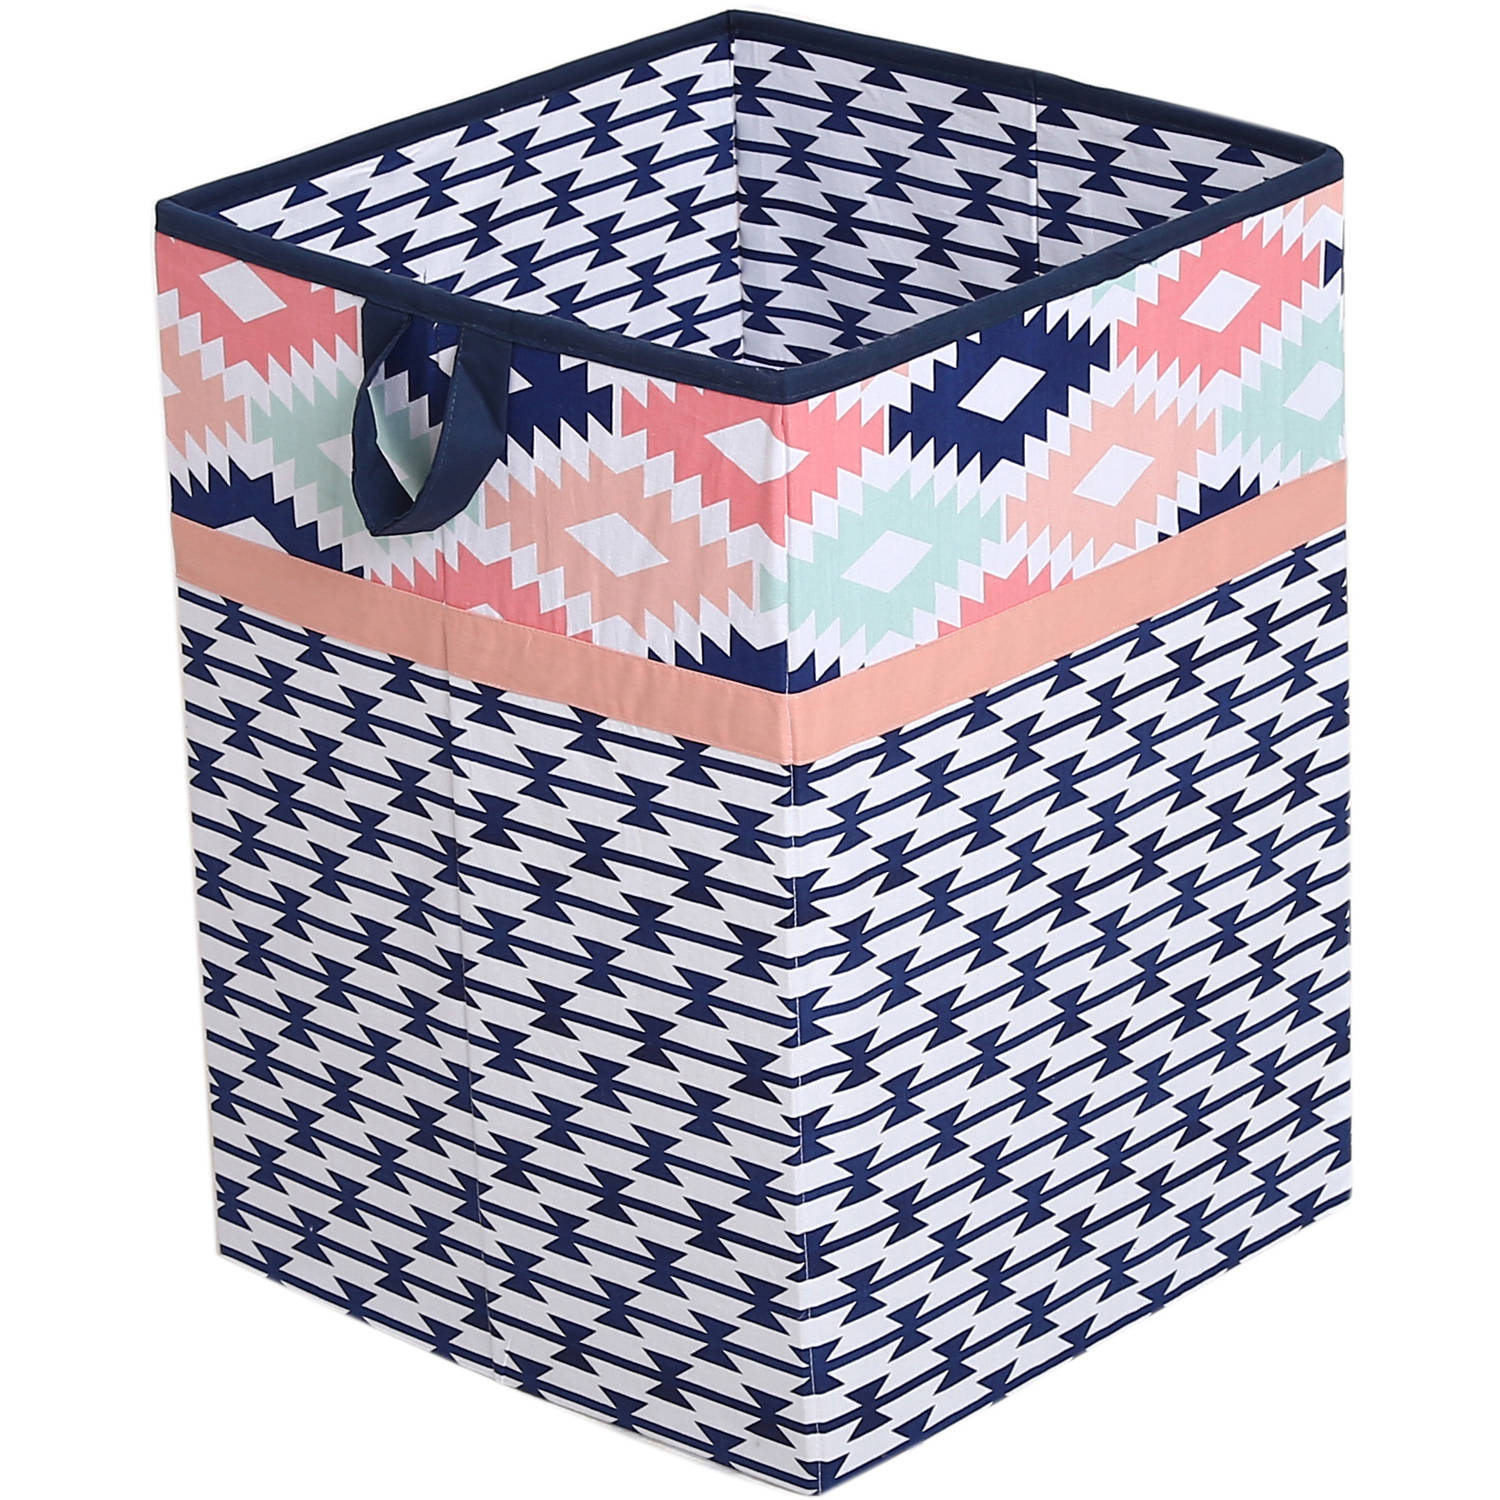 Bacati Aztec Emma Coral Mint Navy Cotton Percale Fabric covered Storage, Collapsible Hamper, 18 H x 13 W x 13... by Bacati